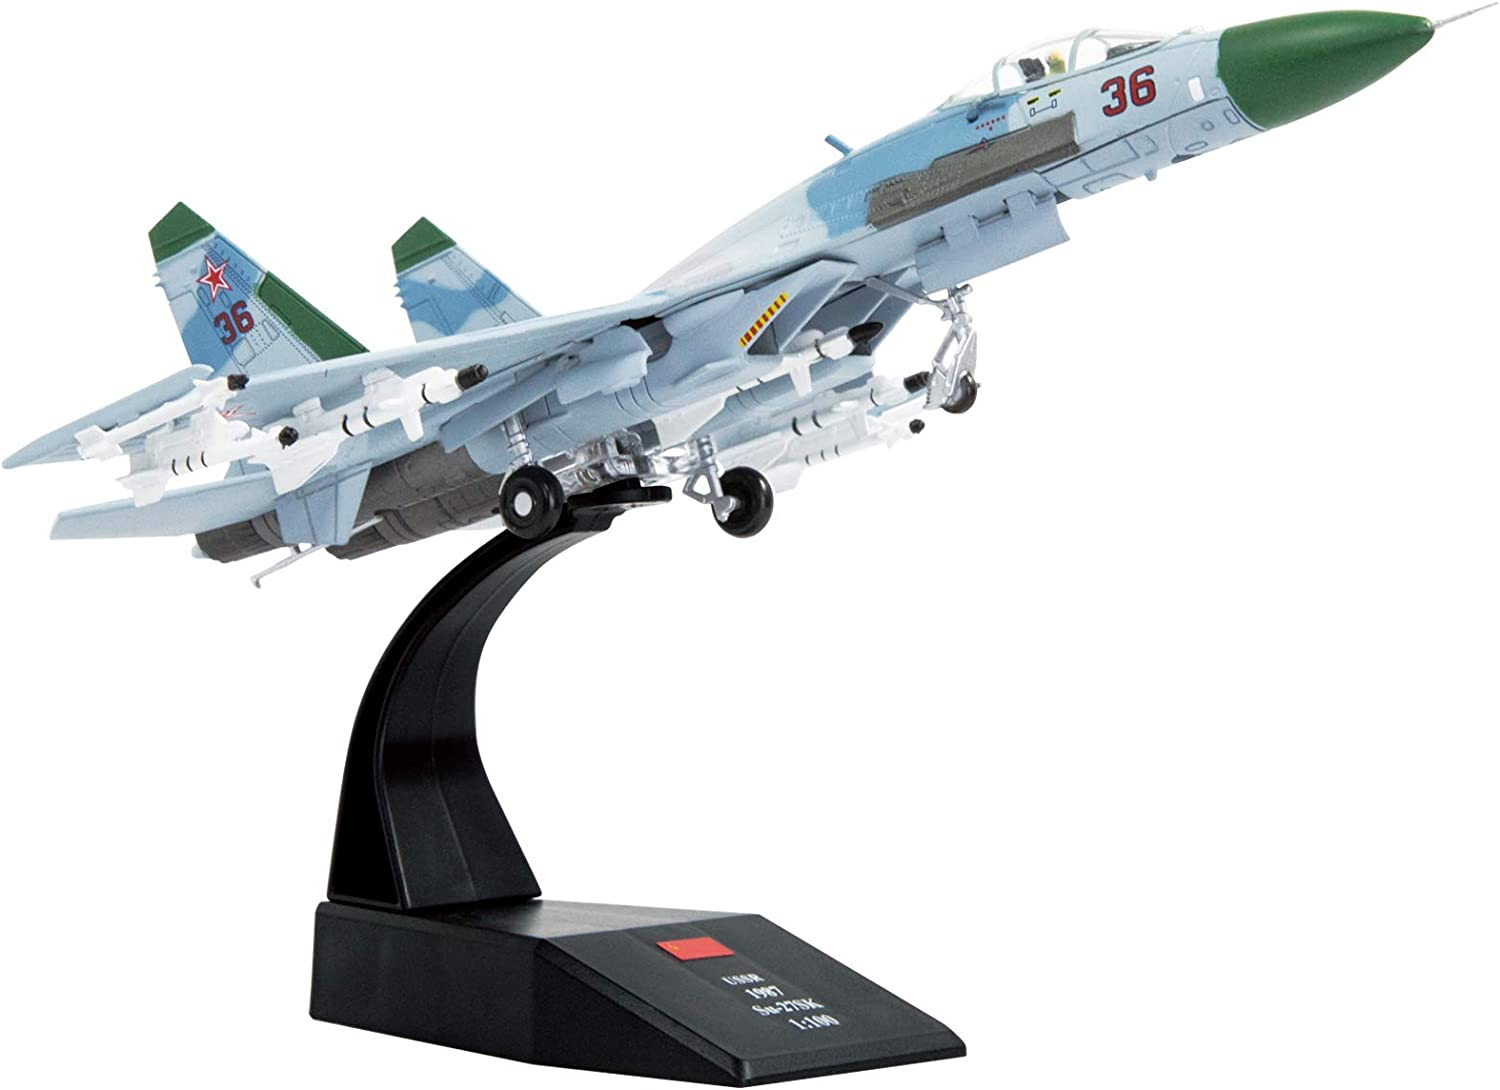 Lose Fun Park 1:100 F-15 Strike Eagle Diecast Metal Fighter Military Planes Models Jet Model Airplane for Collection